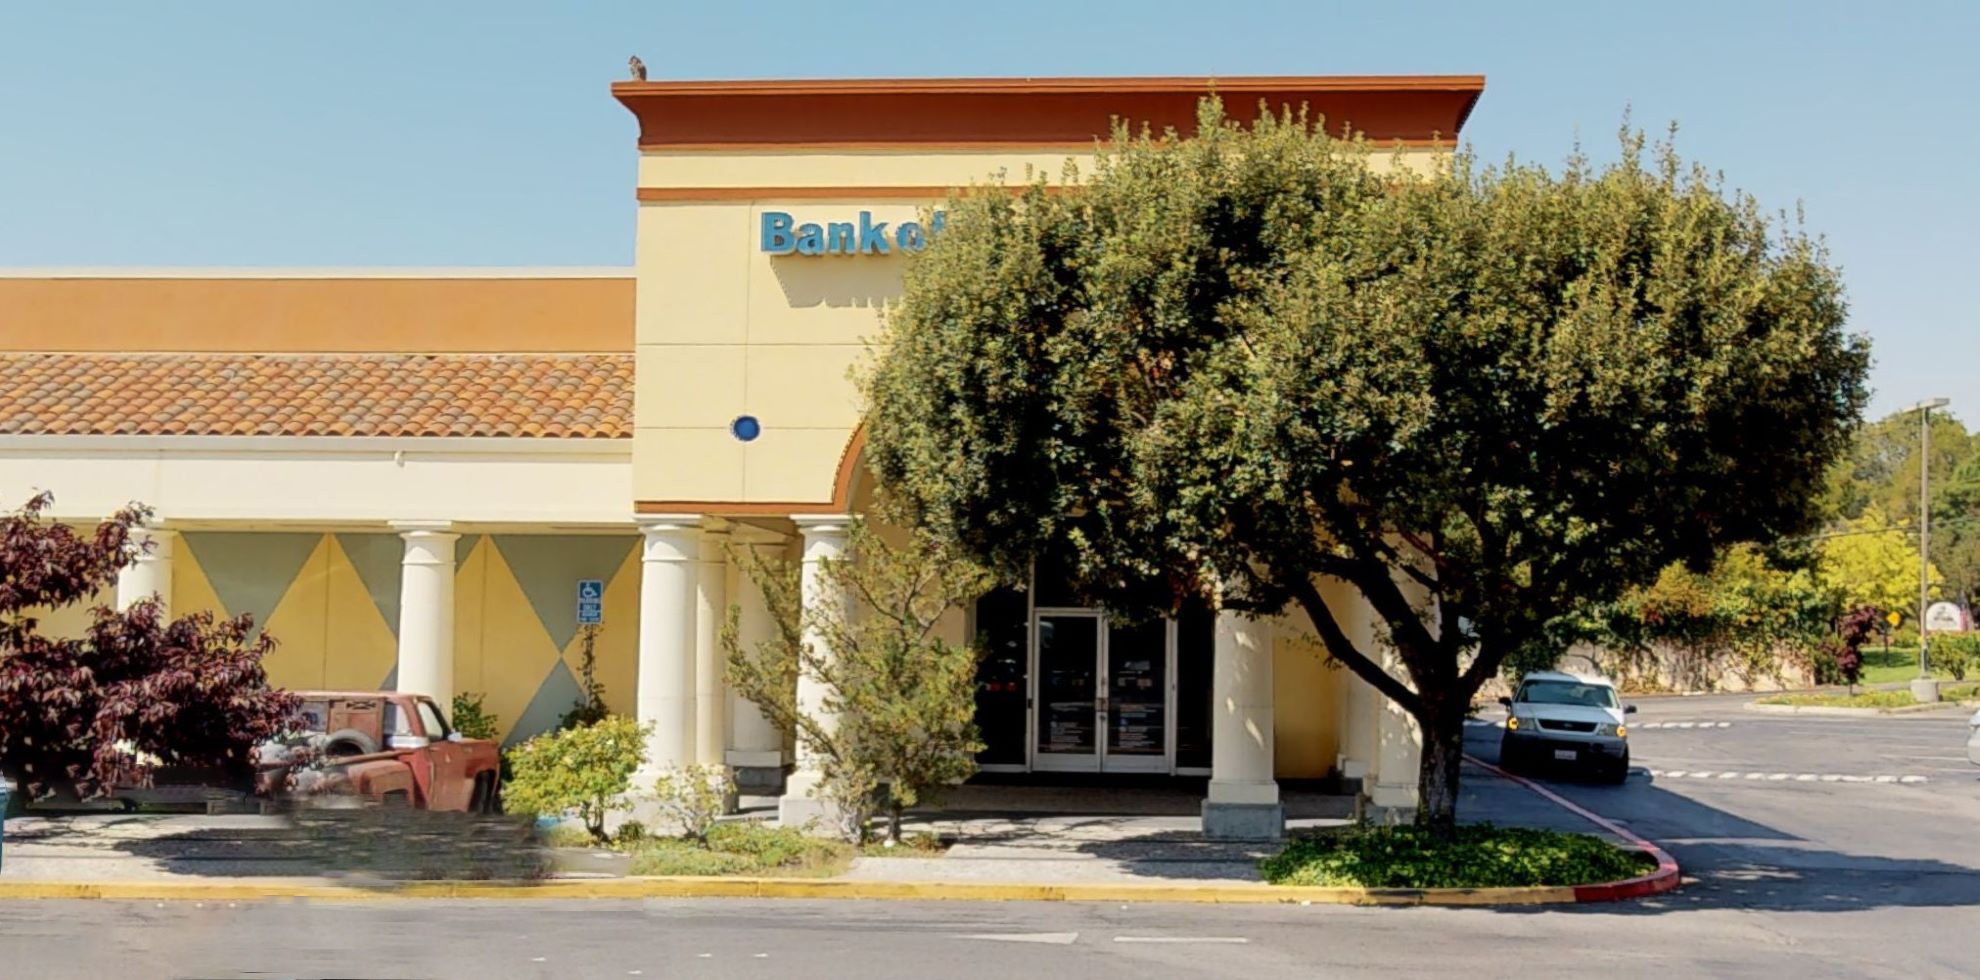 Bank of America financial center with walk-up ATM   3491 McKee Rd, San Jose, CA 95127